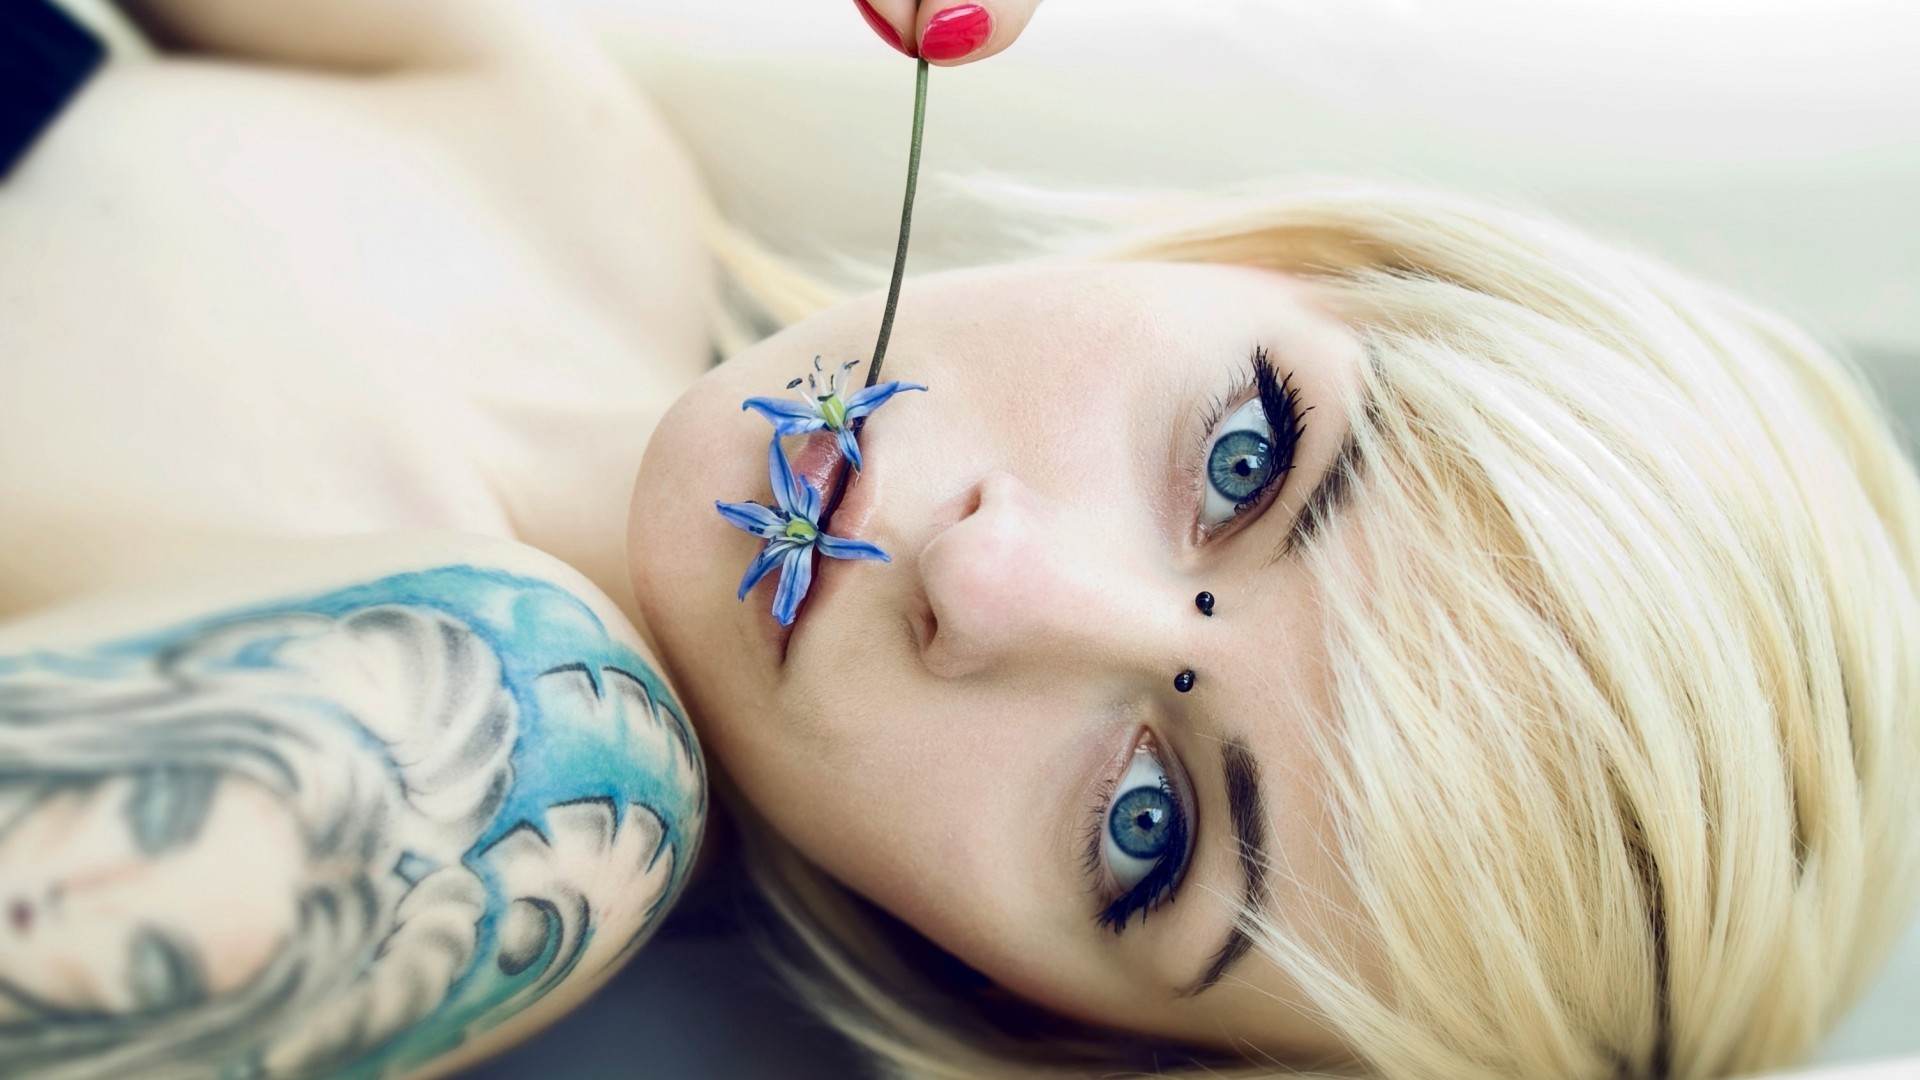 1920x1080 Beautiful Girl Tattoo HD Wallpaper of Tattoos Top Wallpaper 2013